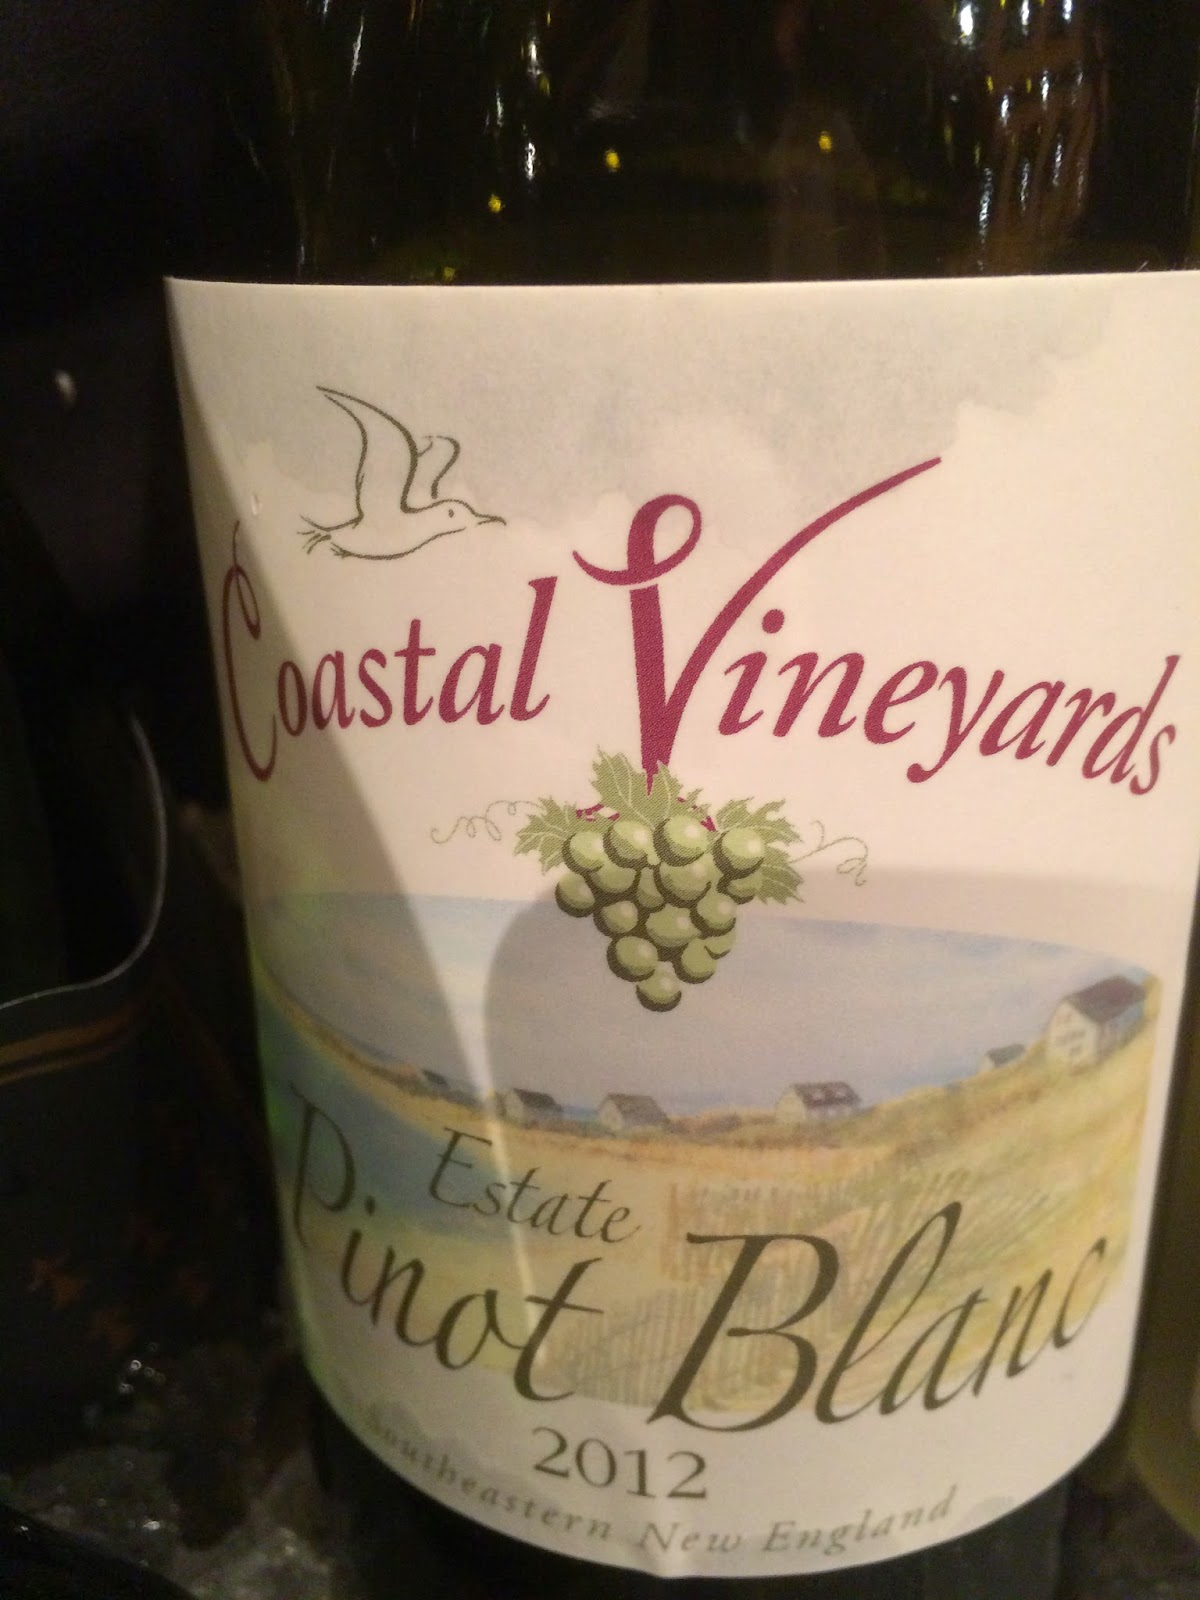 They have eight acres of vinifera grape vines including Chardonnay Pinot Gris Pinot Noir Sauvignon Blanc Gewurztraminer ... & East Coast Wineries: January 2015